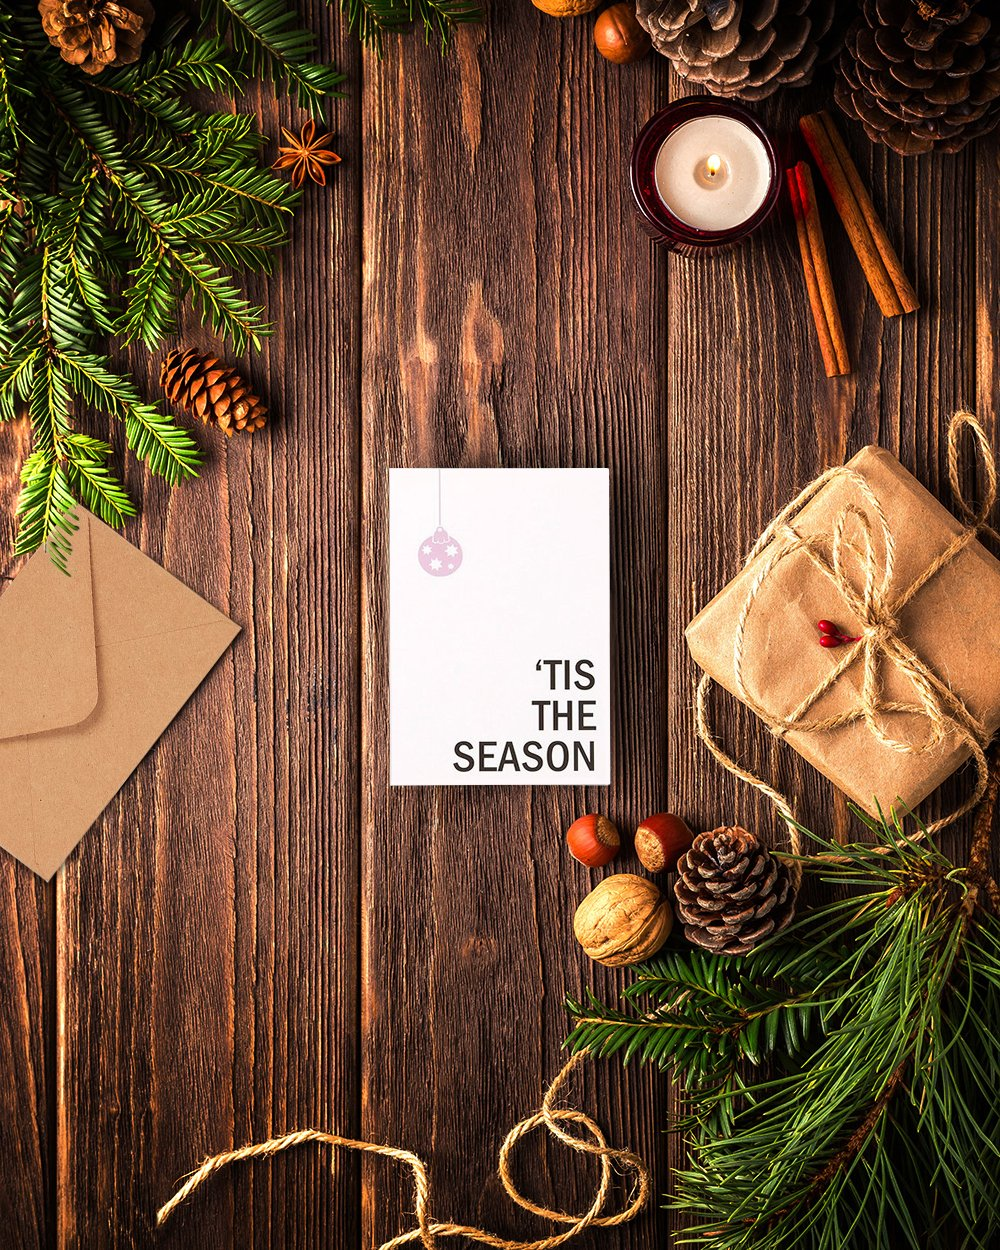 Amazon 48 pack merry christmas greeting cards bulk box set amazon 48 pack merry christmas greeting cards bulk box set winter holiday xmas holiday greeting cards with minimalistic design envelopes included m4hsunfo